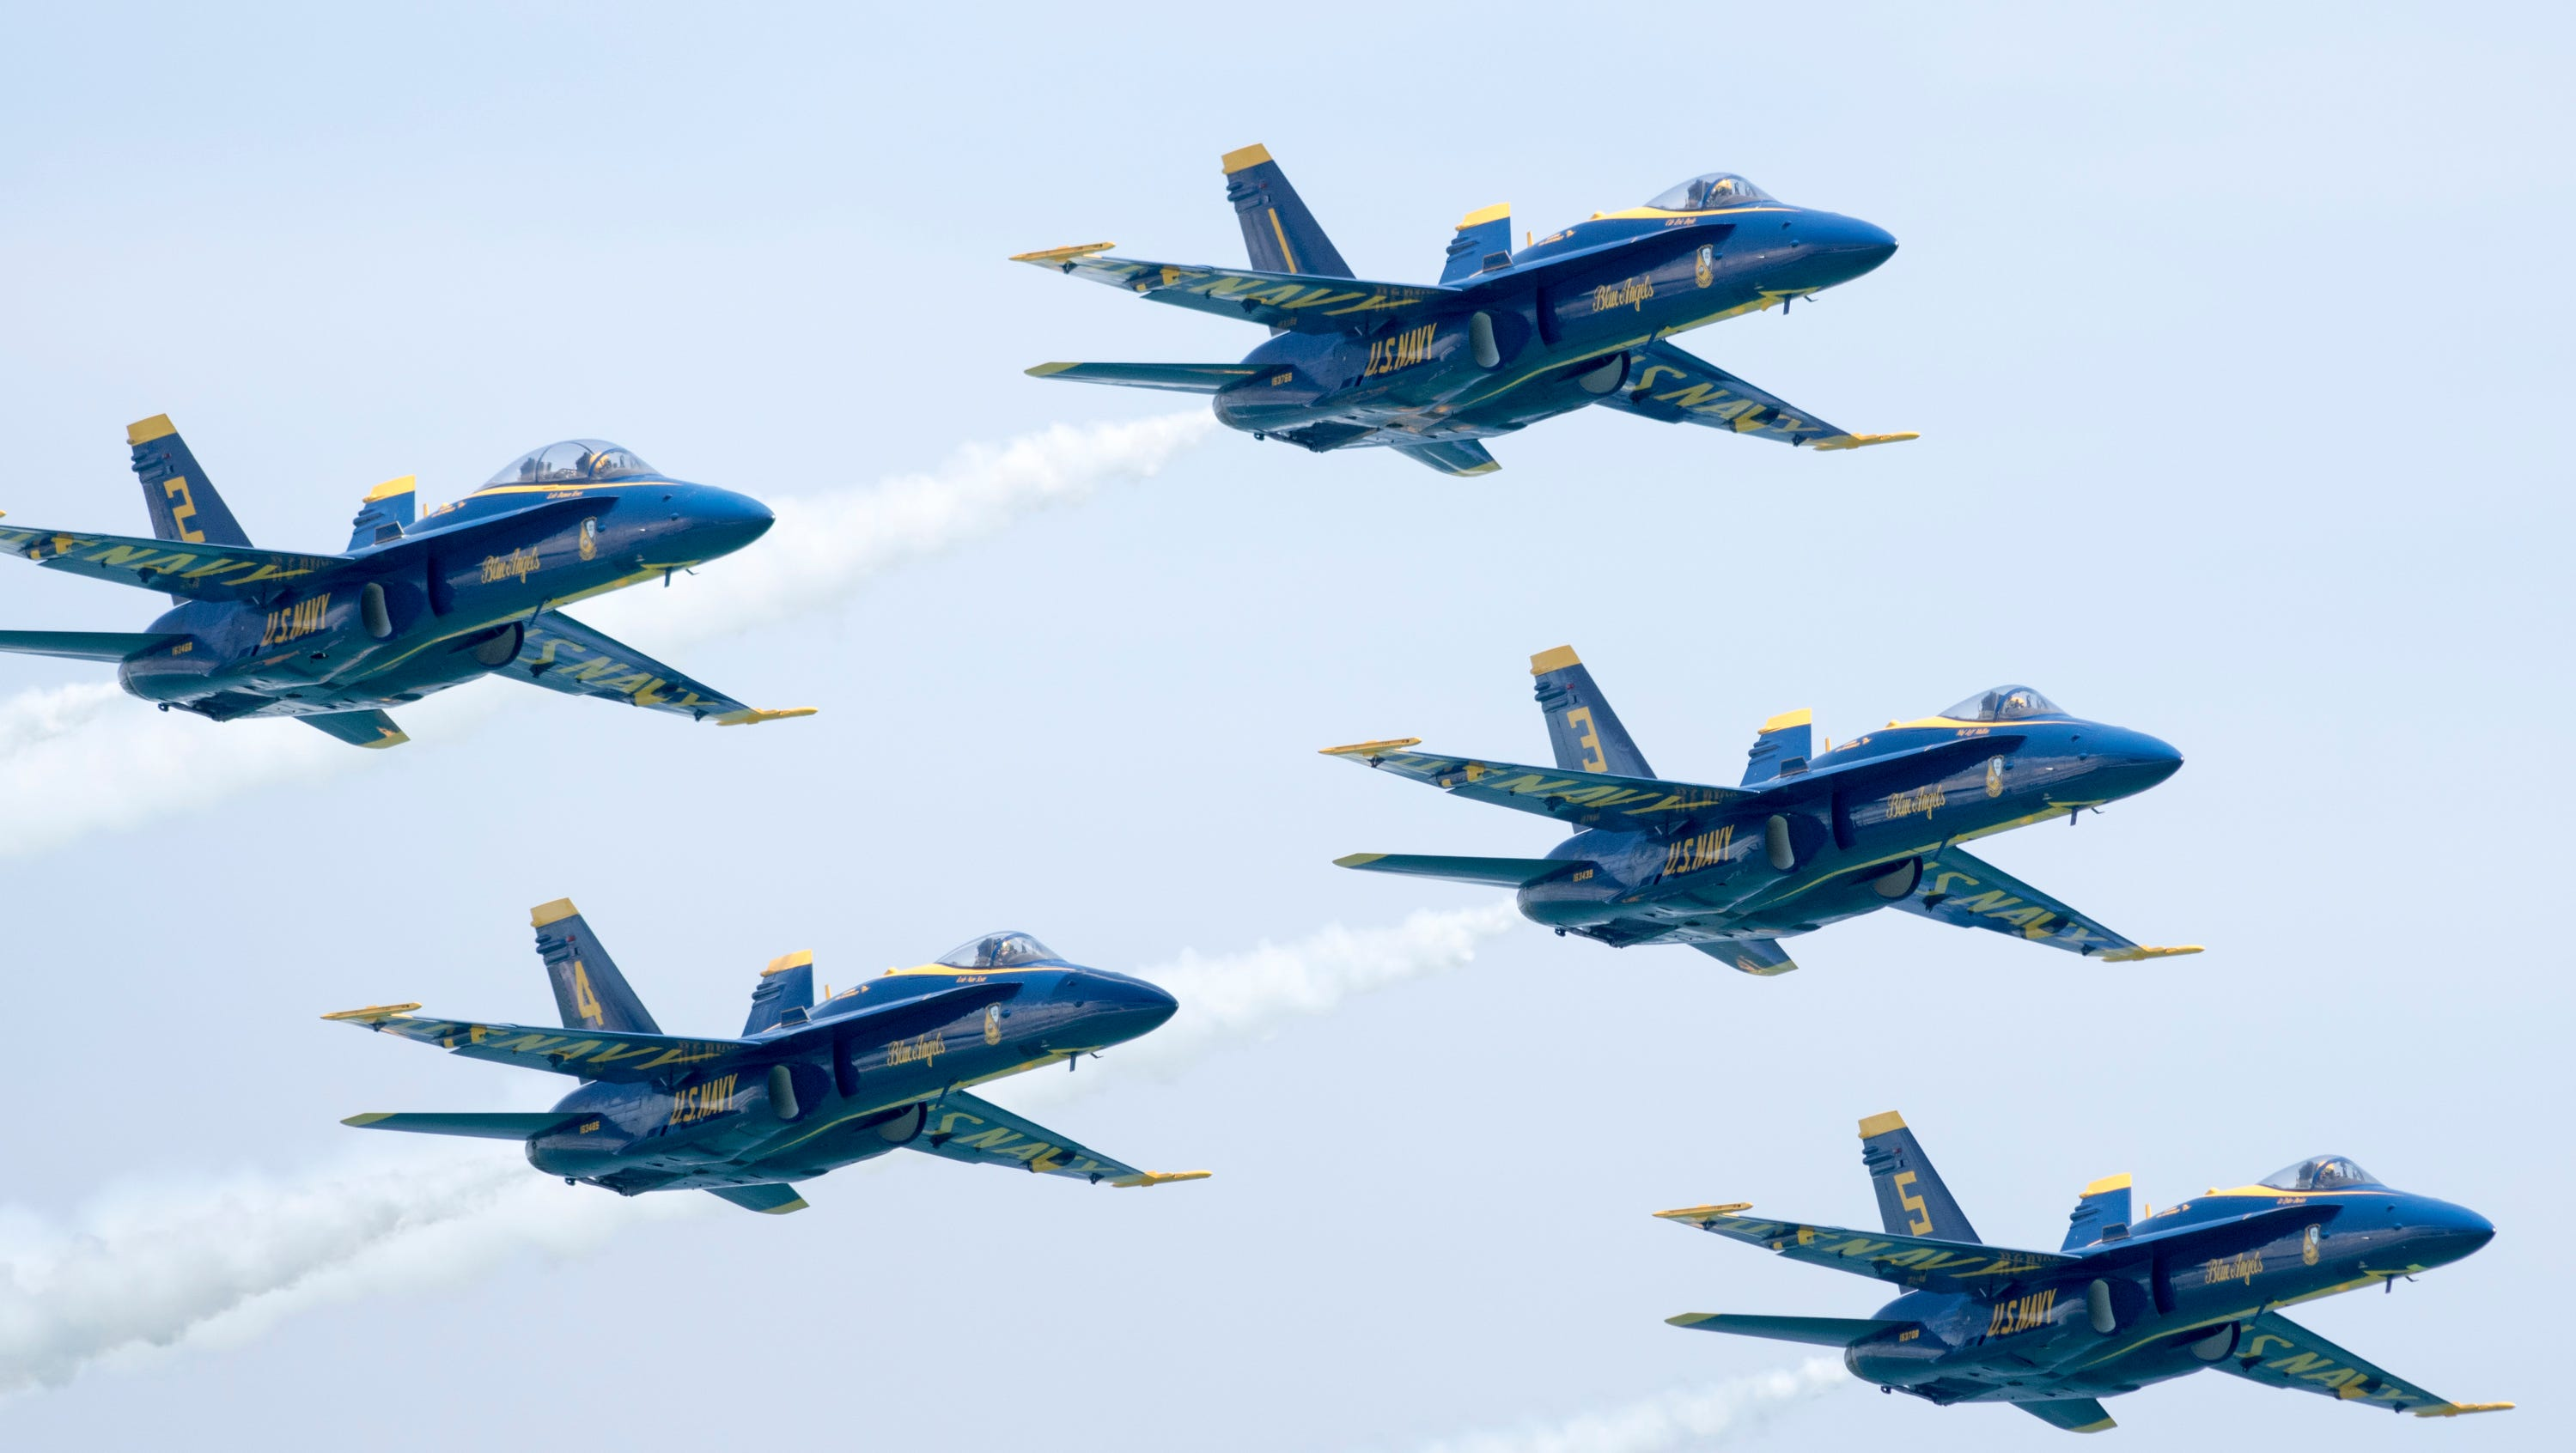 air show at Pensacola Beach on Saturday, July 14, 2018.